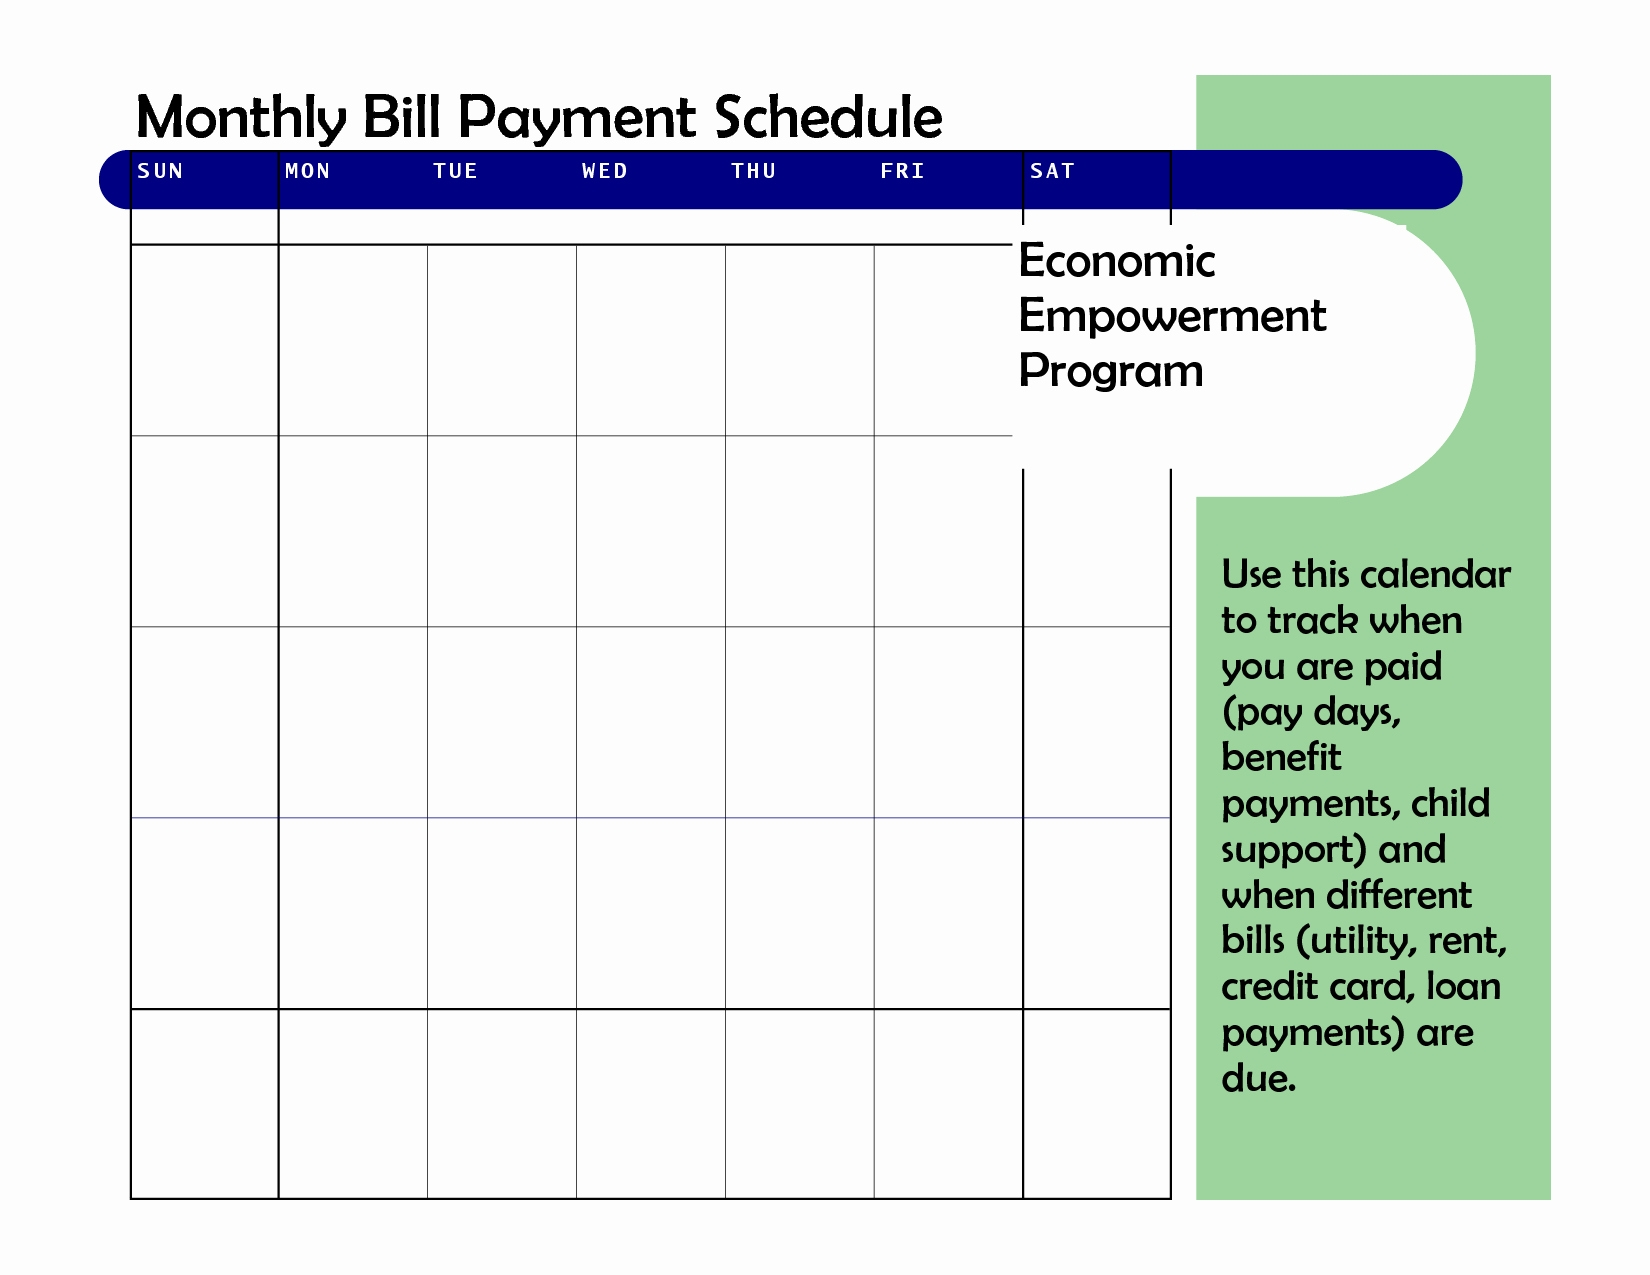 Monthly Bill Planner Template Or Monthly Based Bill Payment Schedule within Monthly Calendar For Paying Bills